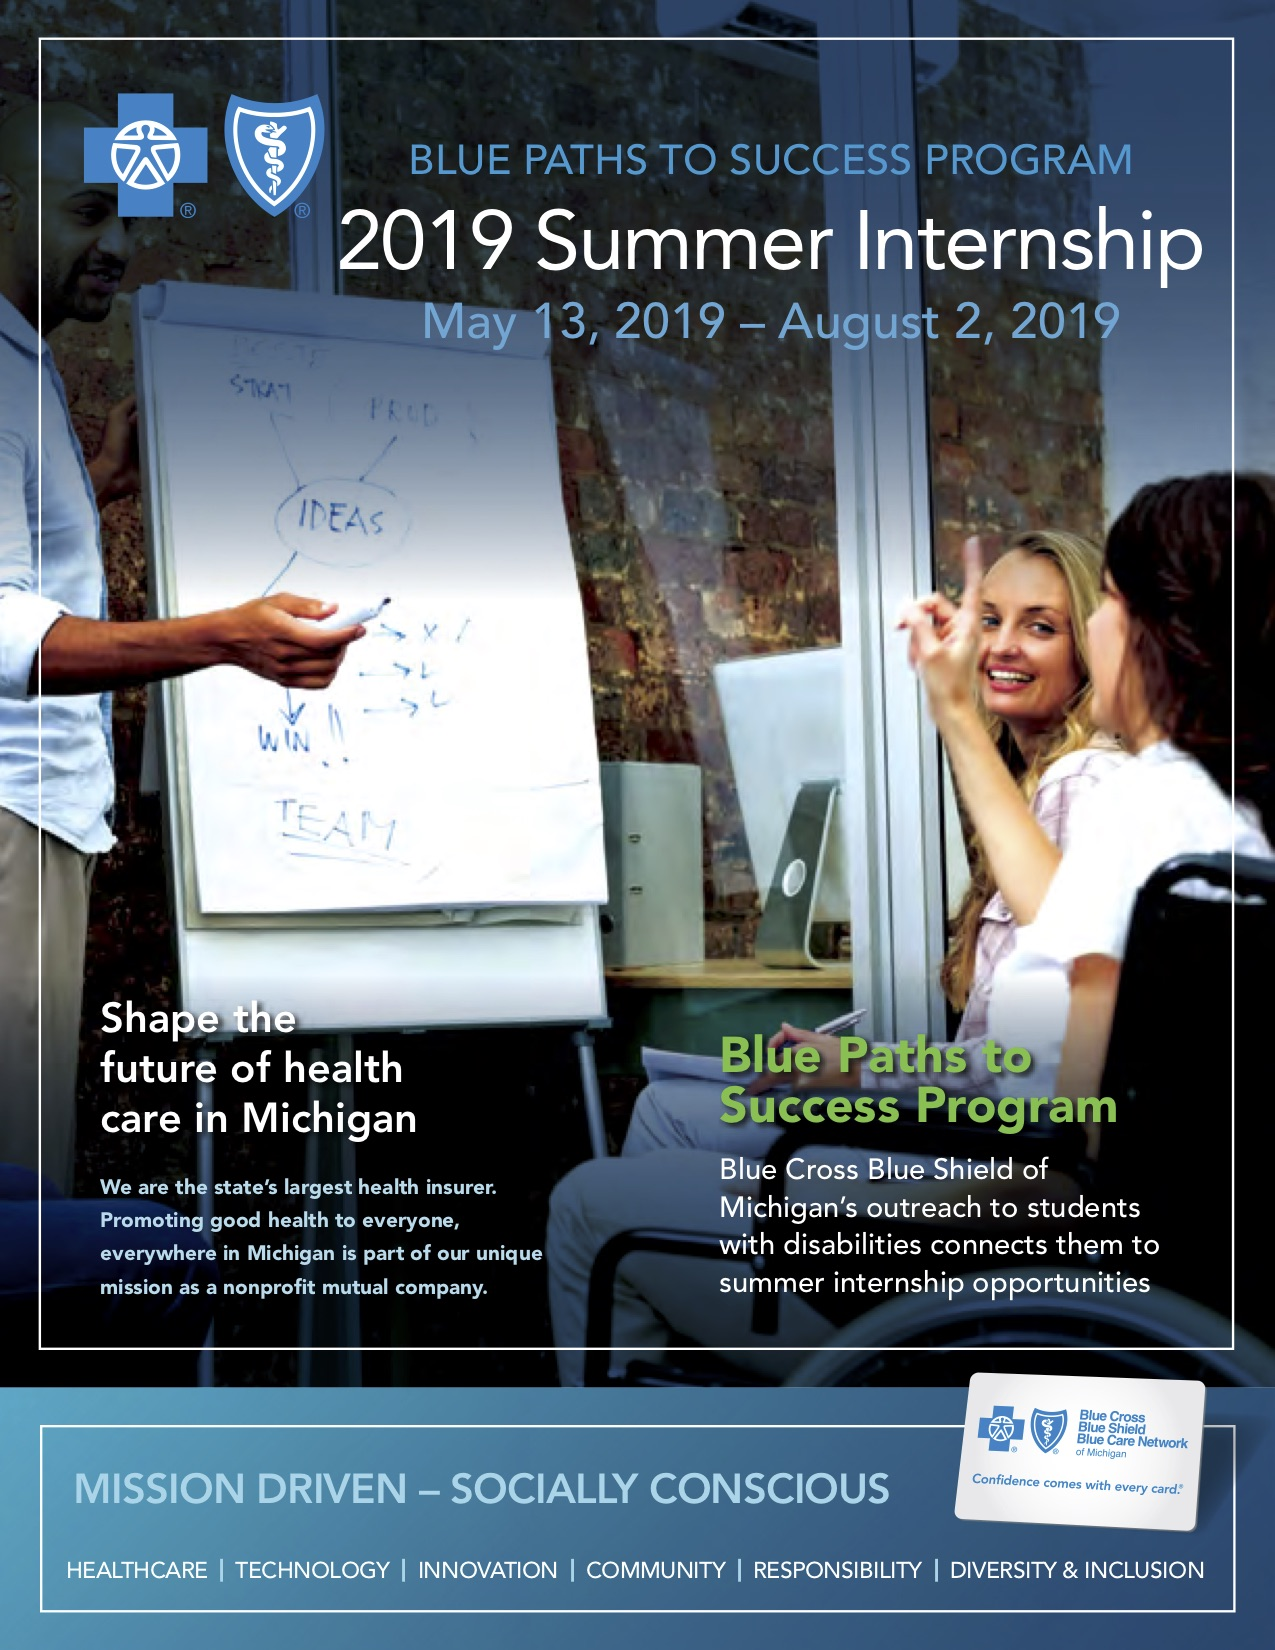 Blue Paths to Success Program, 2019 Summer Internship Blue Cross Blue Shield, May 13, 2019-August 2, 2019